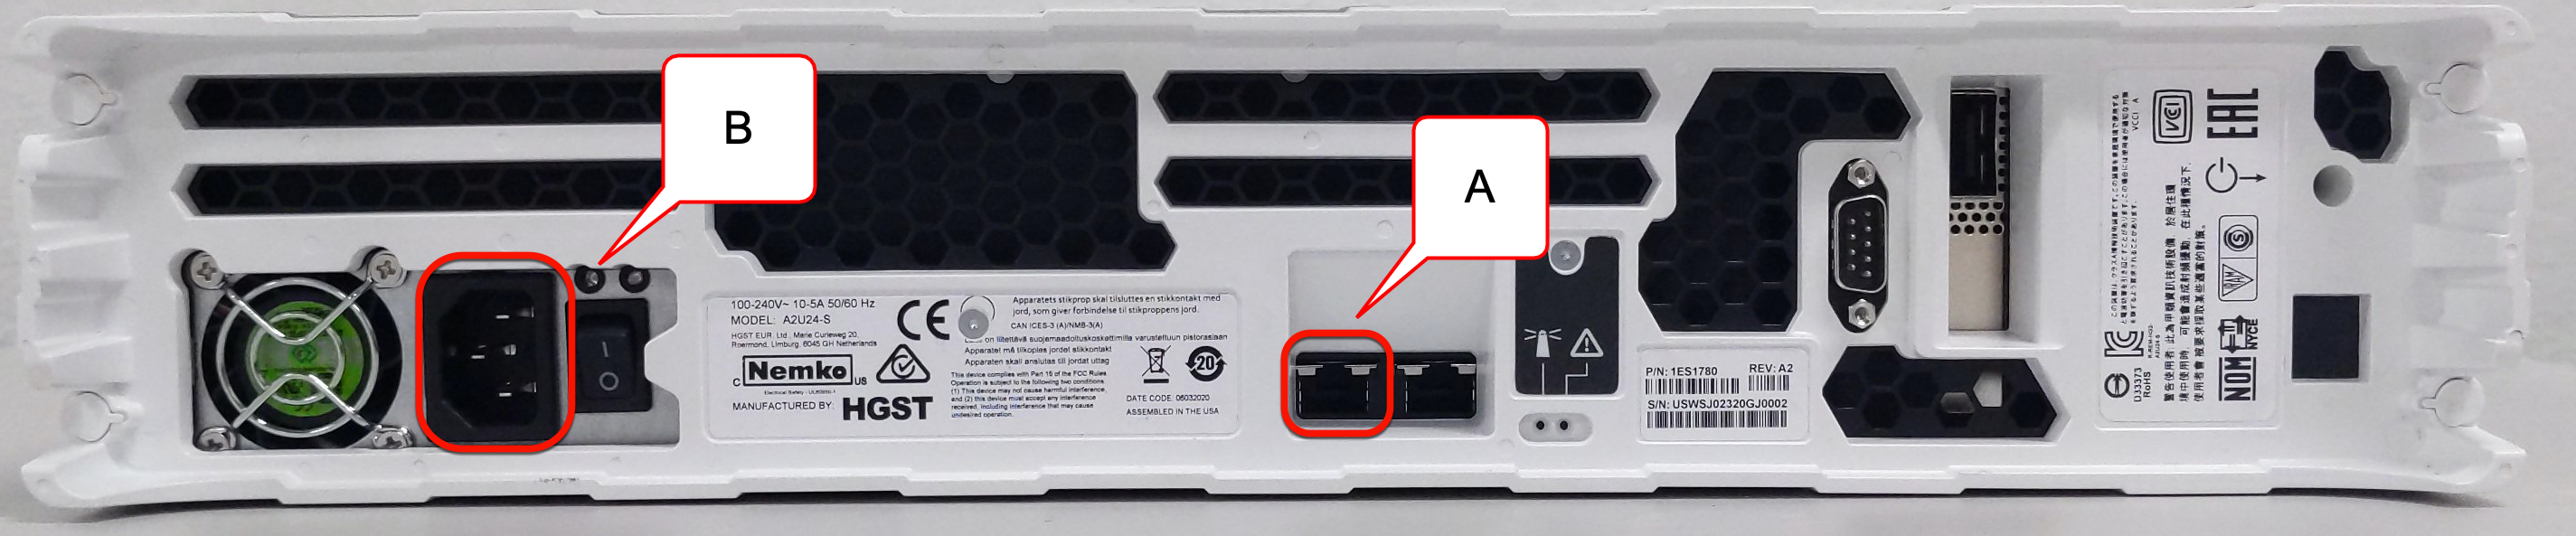 Cable connections for Transfer Appliance